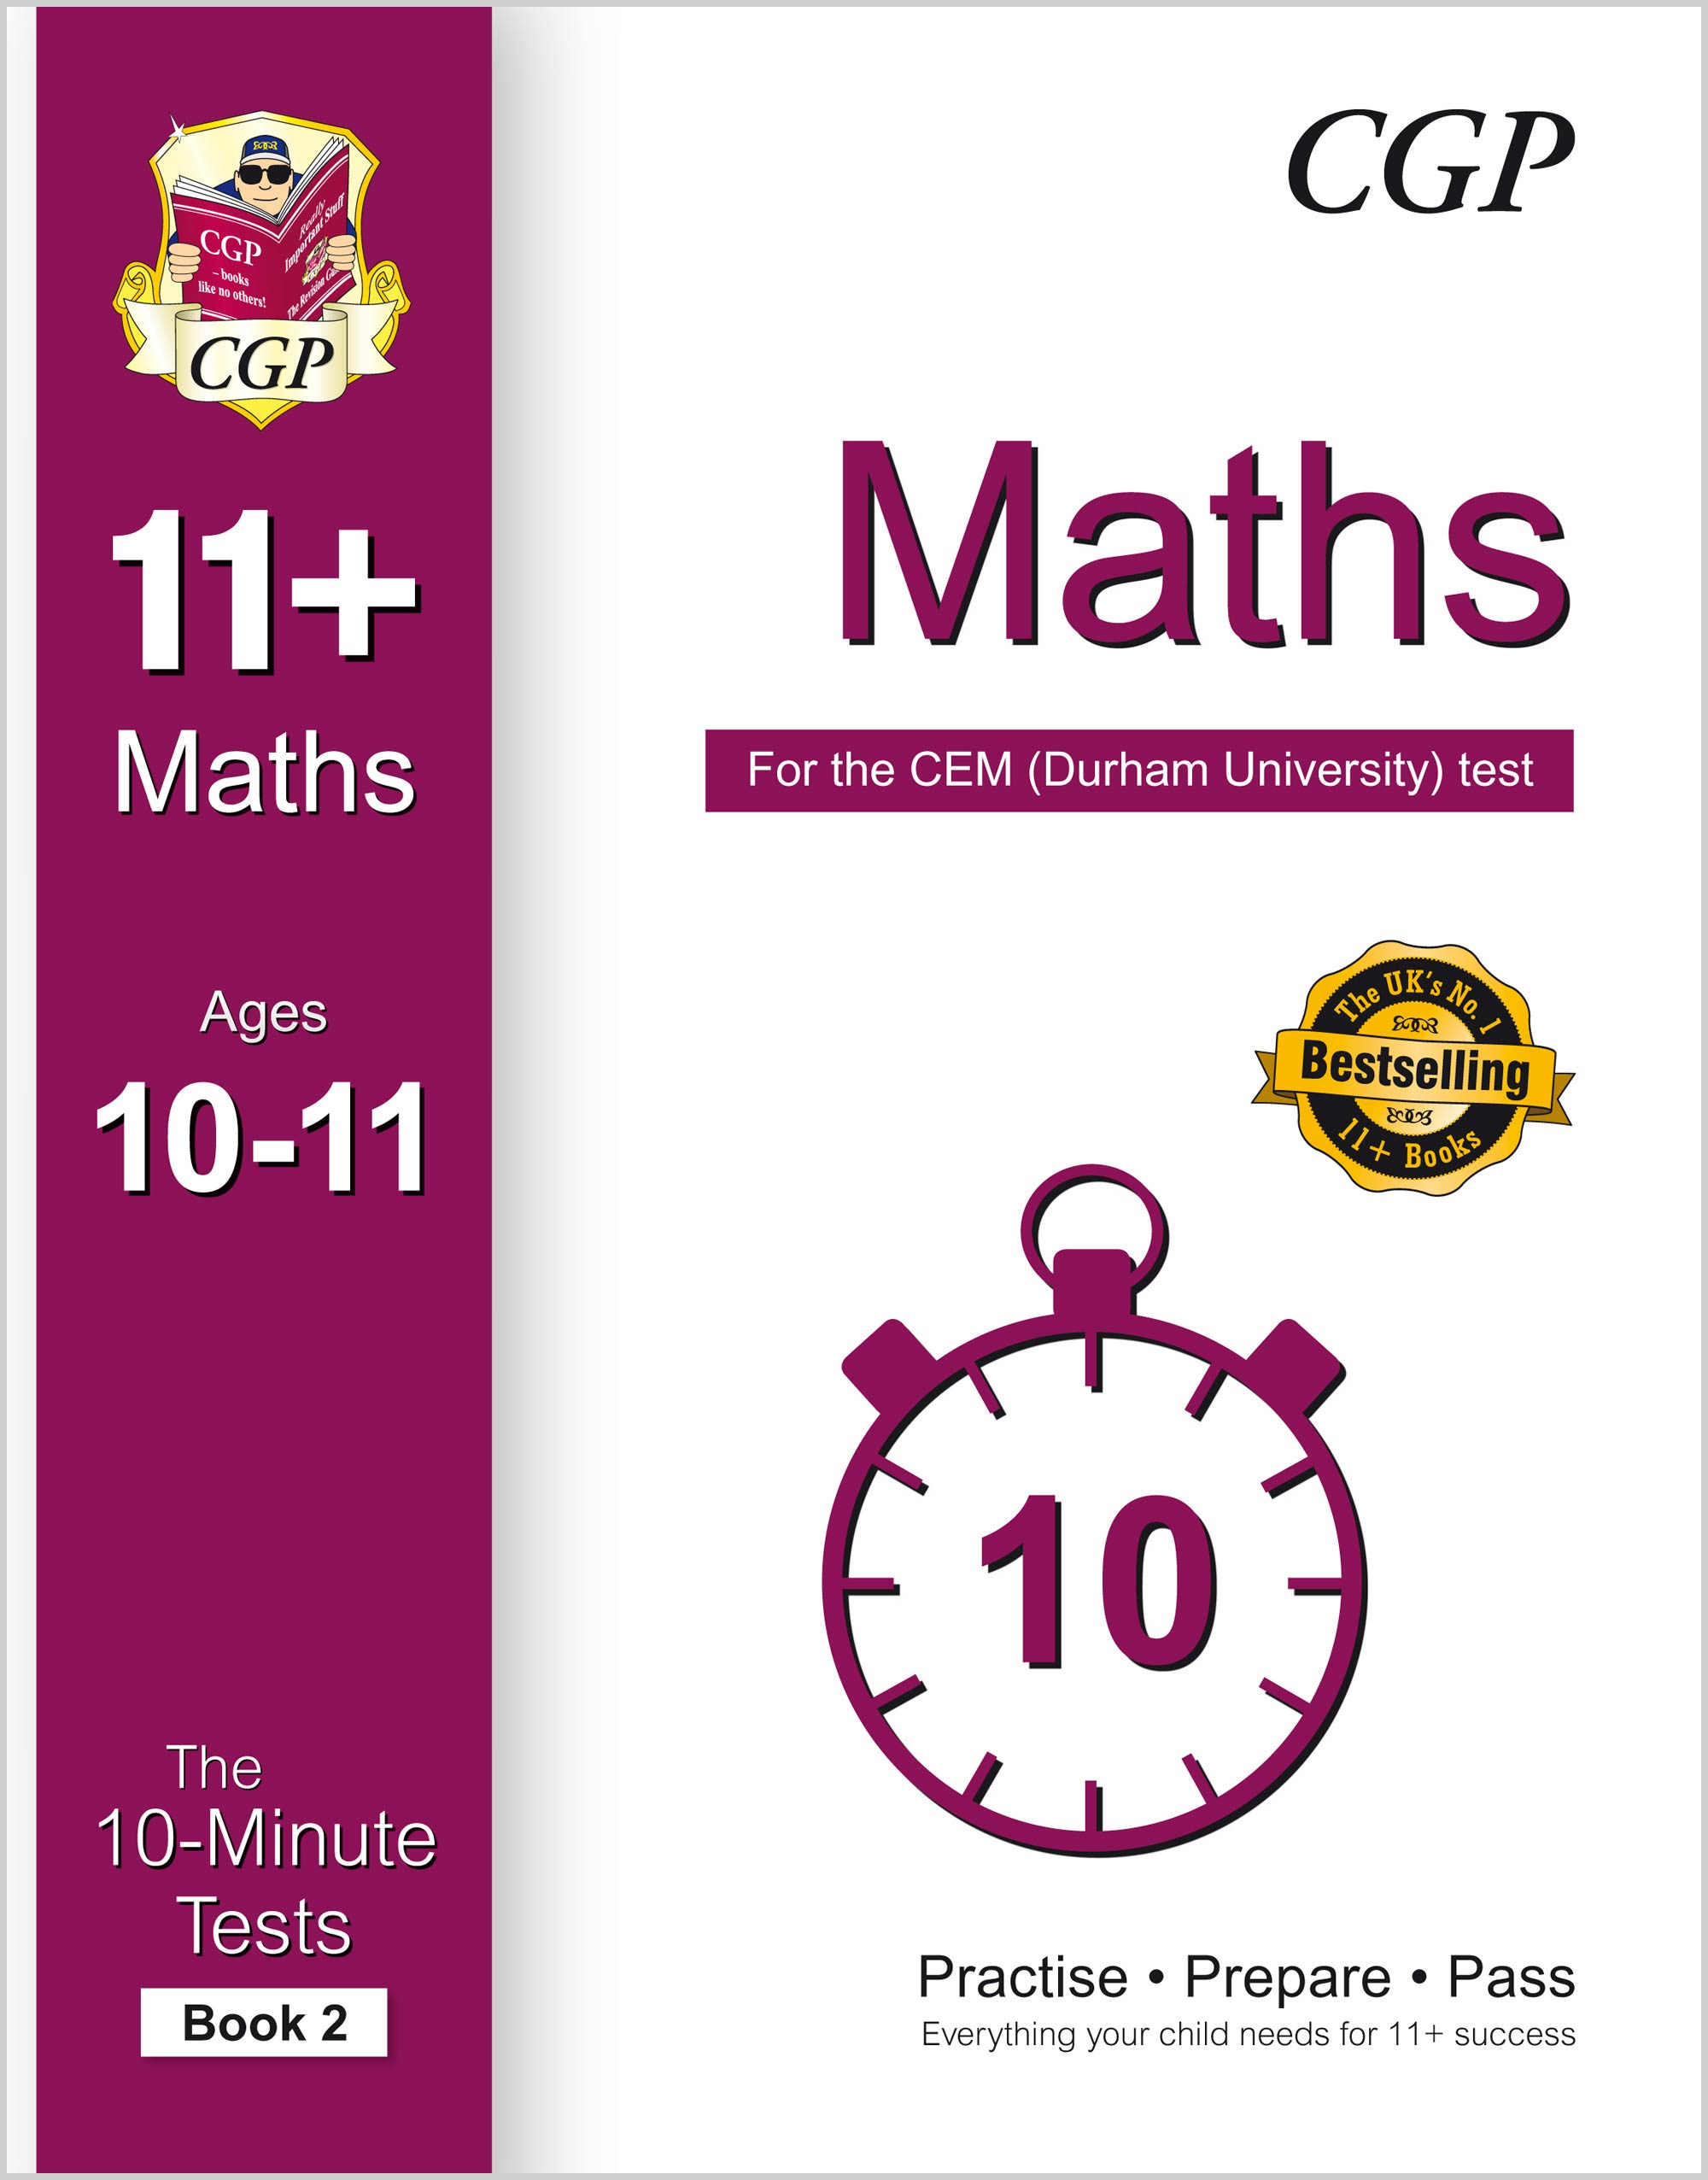 M6XPD2E1 - 10-Minute Tests for 11+ Maths Ages 10-11 (Book 2) - CEM Test